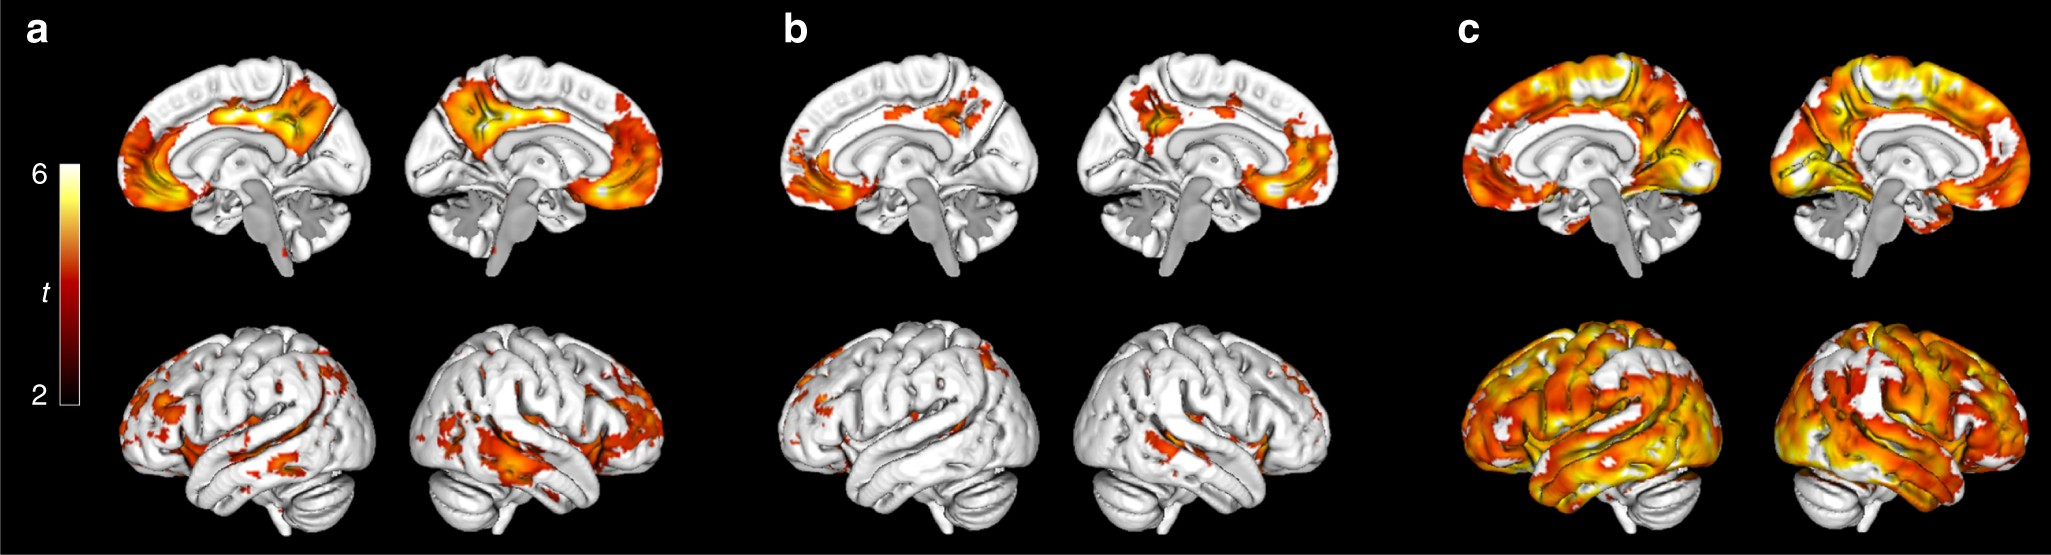 Earliest Accumulation Of Amyloid Occurs Within The Default Mode Drz 400 2005 Wiring Diagram Network And Concurrently Affects Brain Connectivity Nature Communications